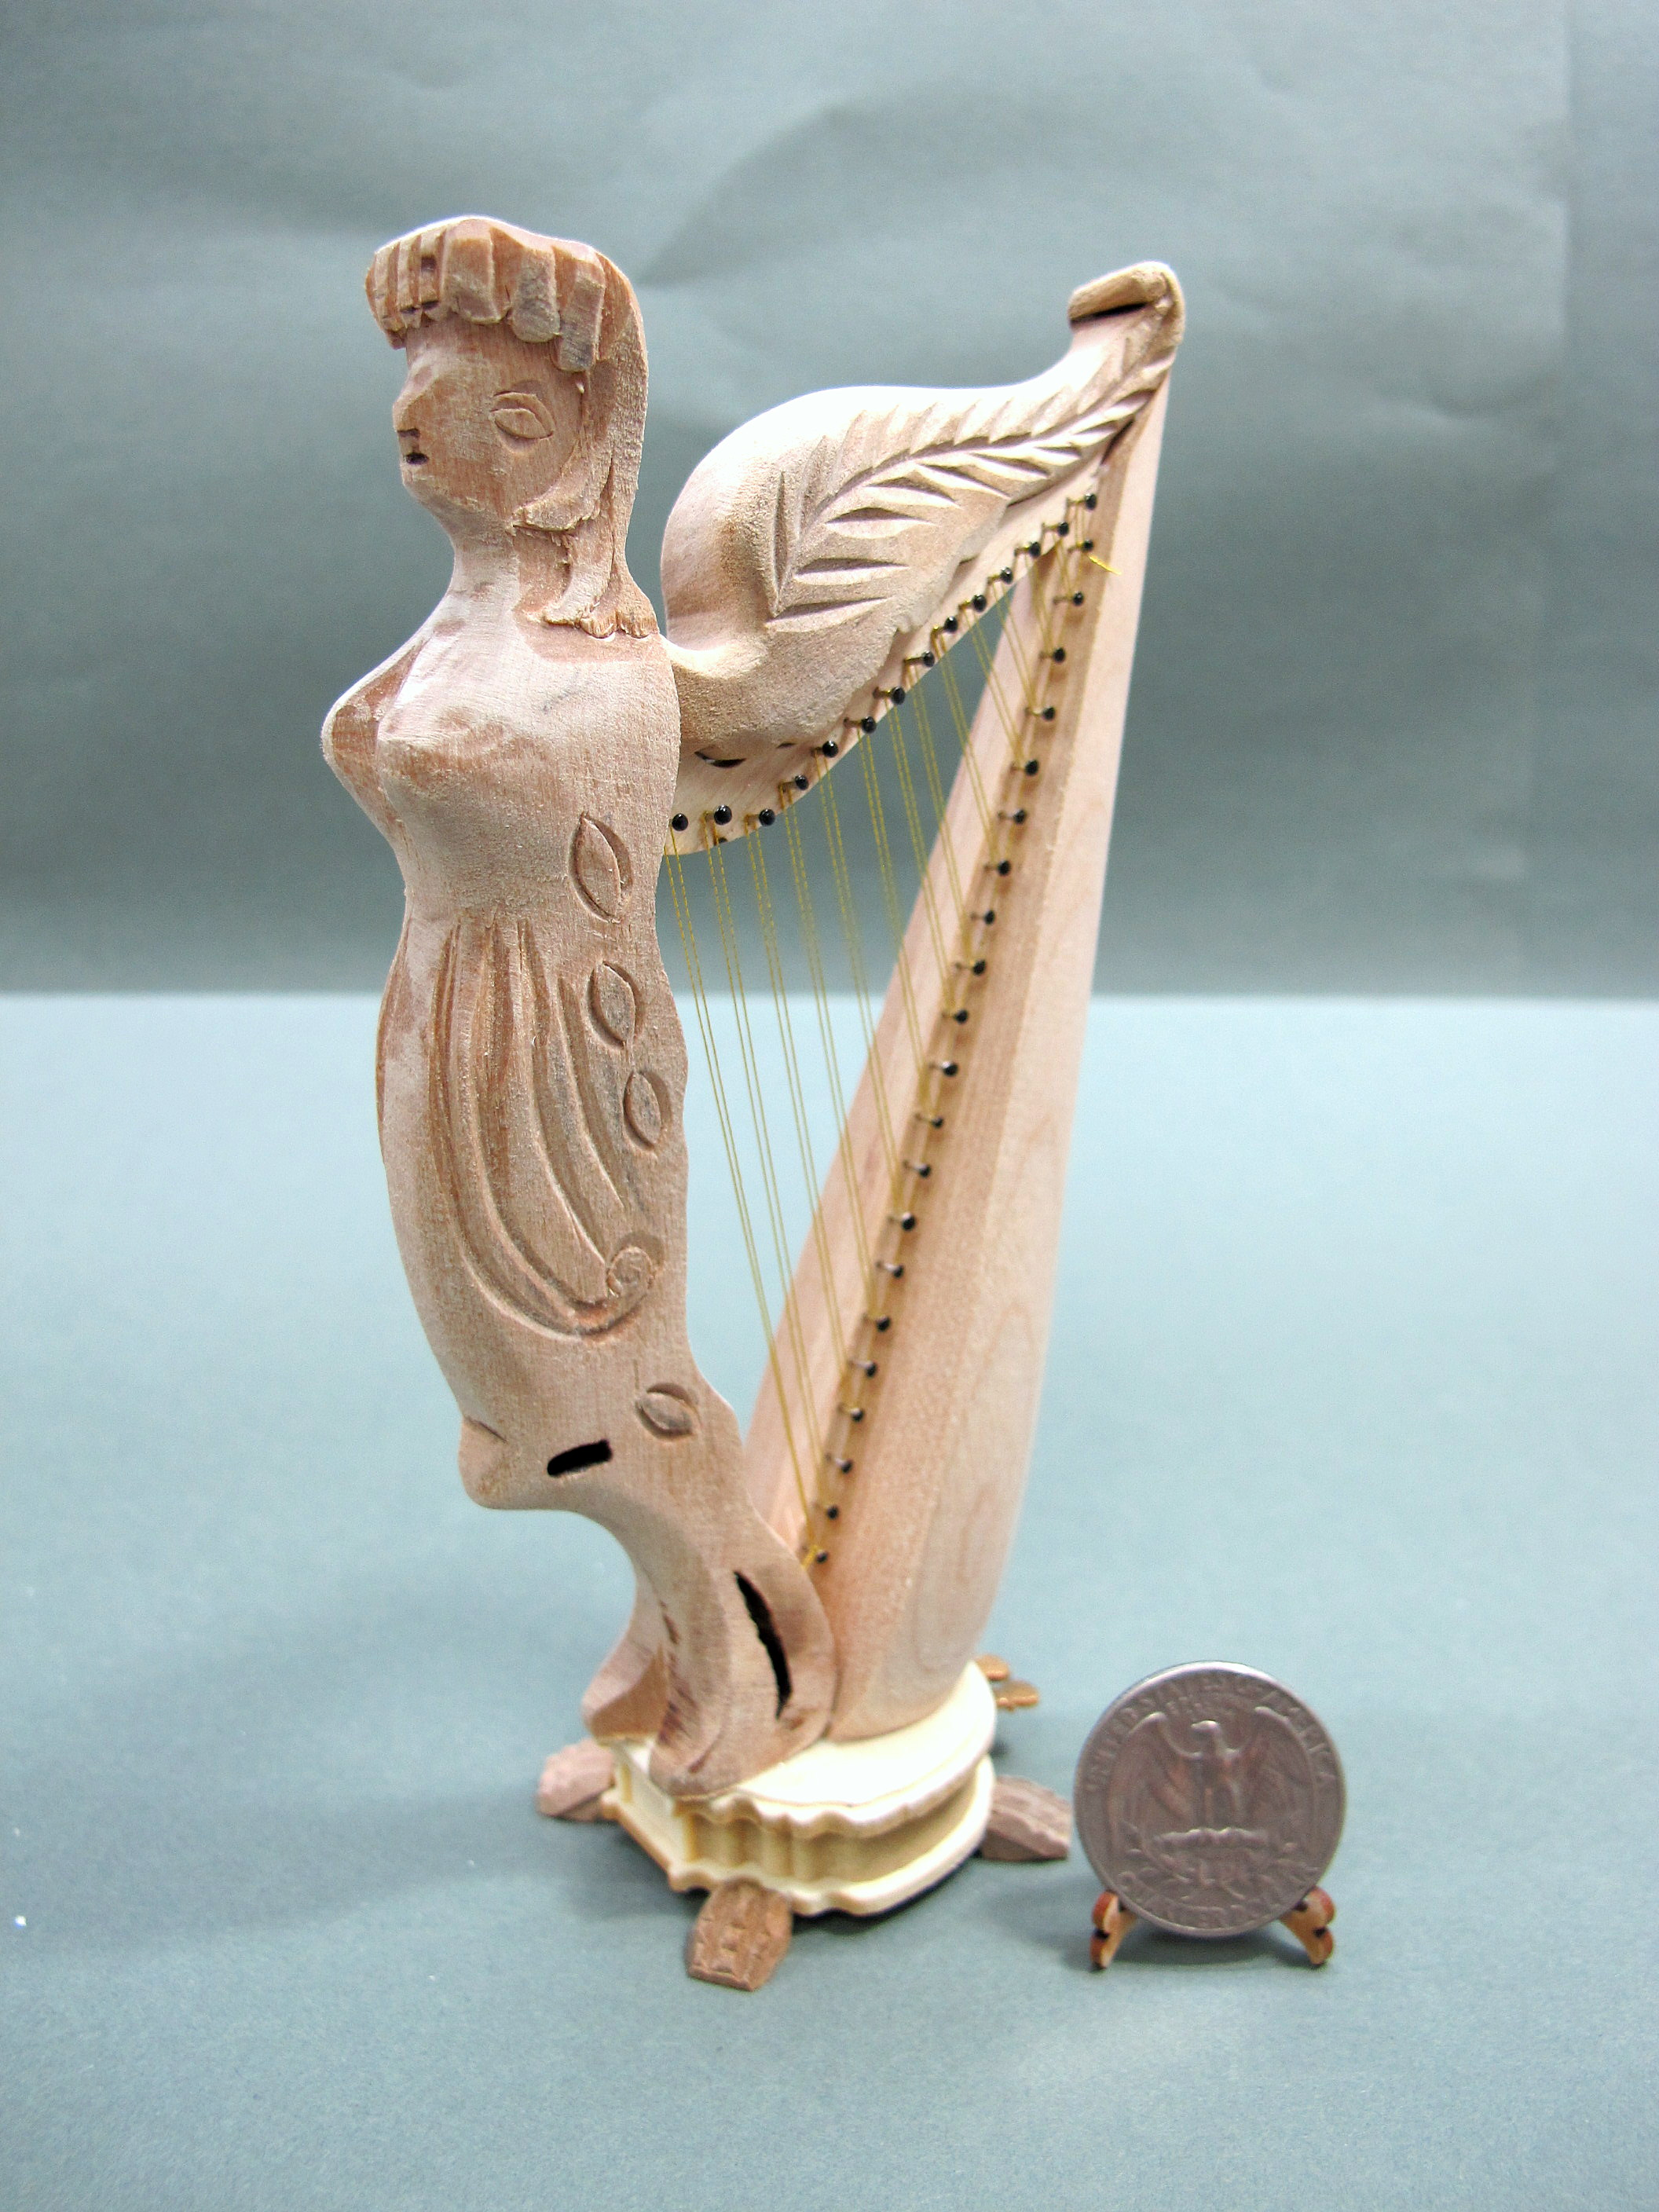 Wood Carved 1:12 Scale Unpainted Angel Harp For Dollhouse